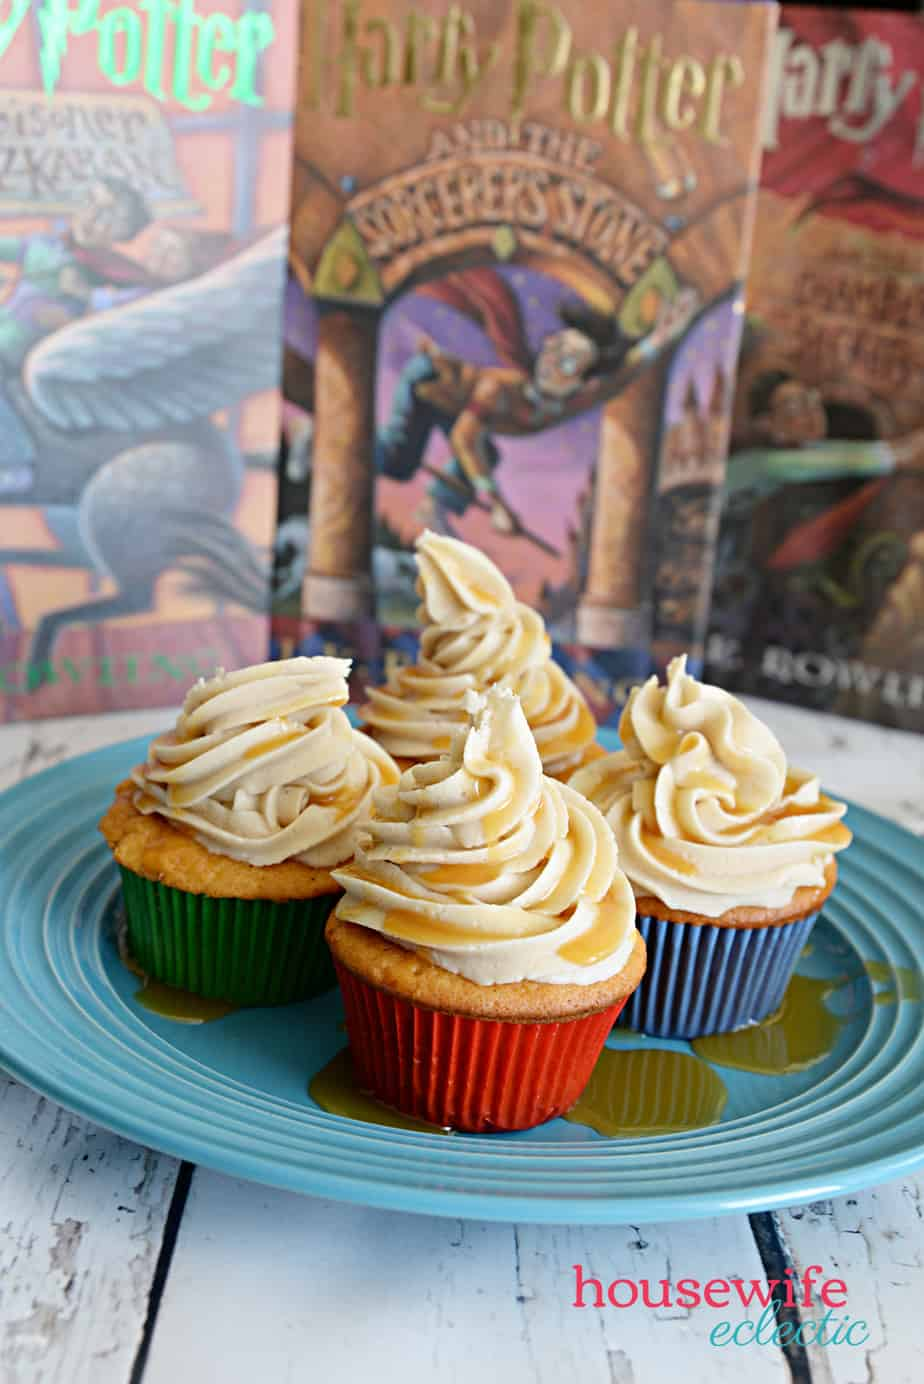 Harry Potter Butterbeer Cupcakes with Butterbeer Frosting